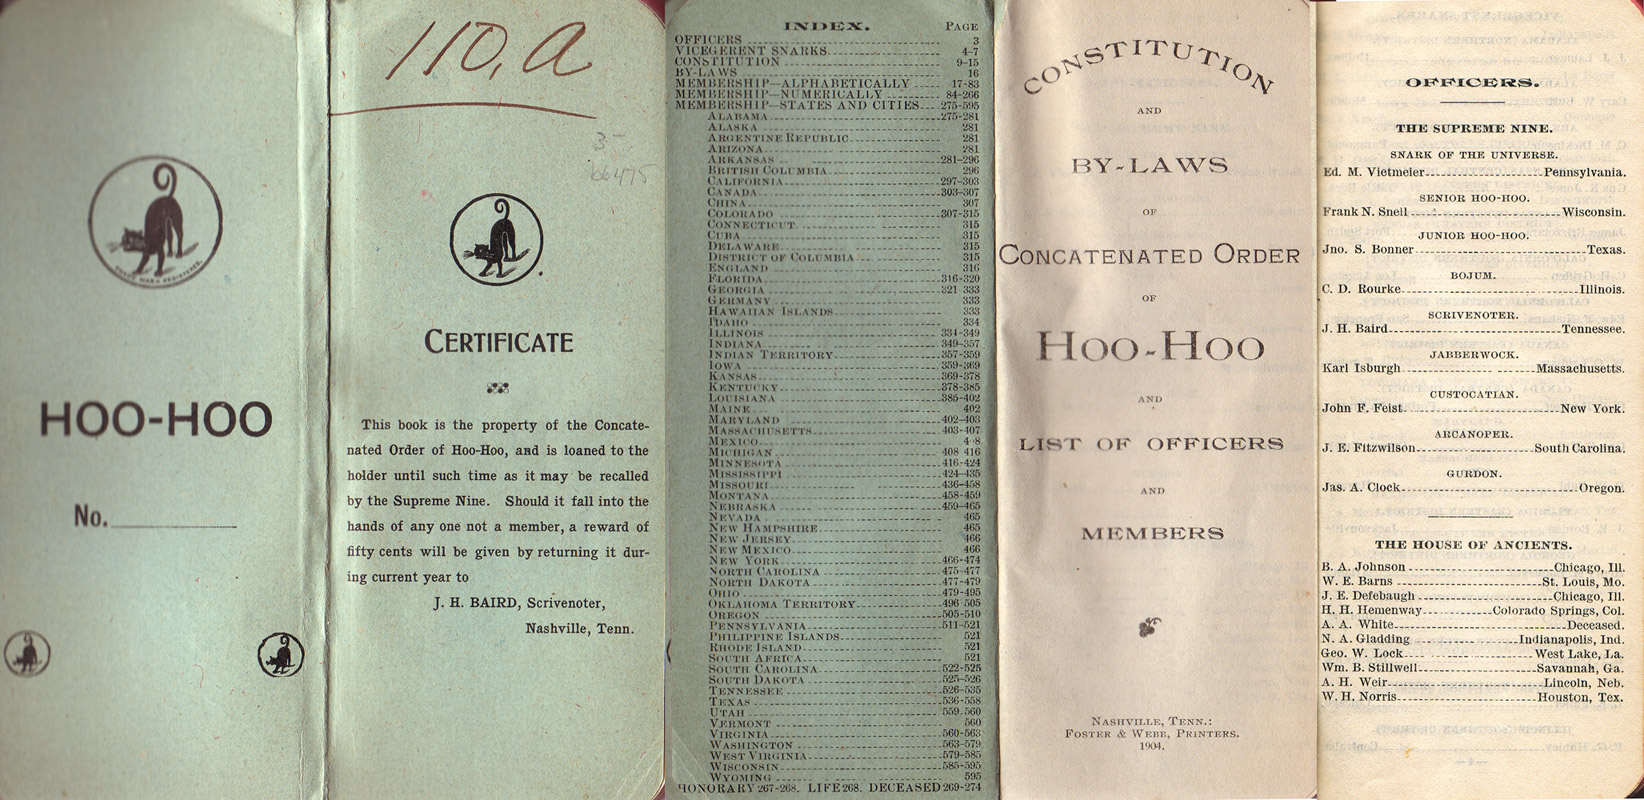 Concatenated Order of Hoo-Hoo Constitution